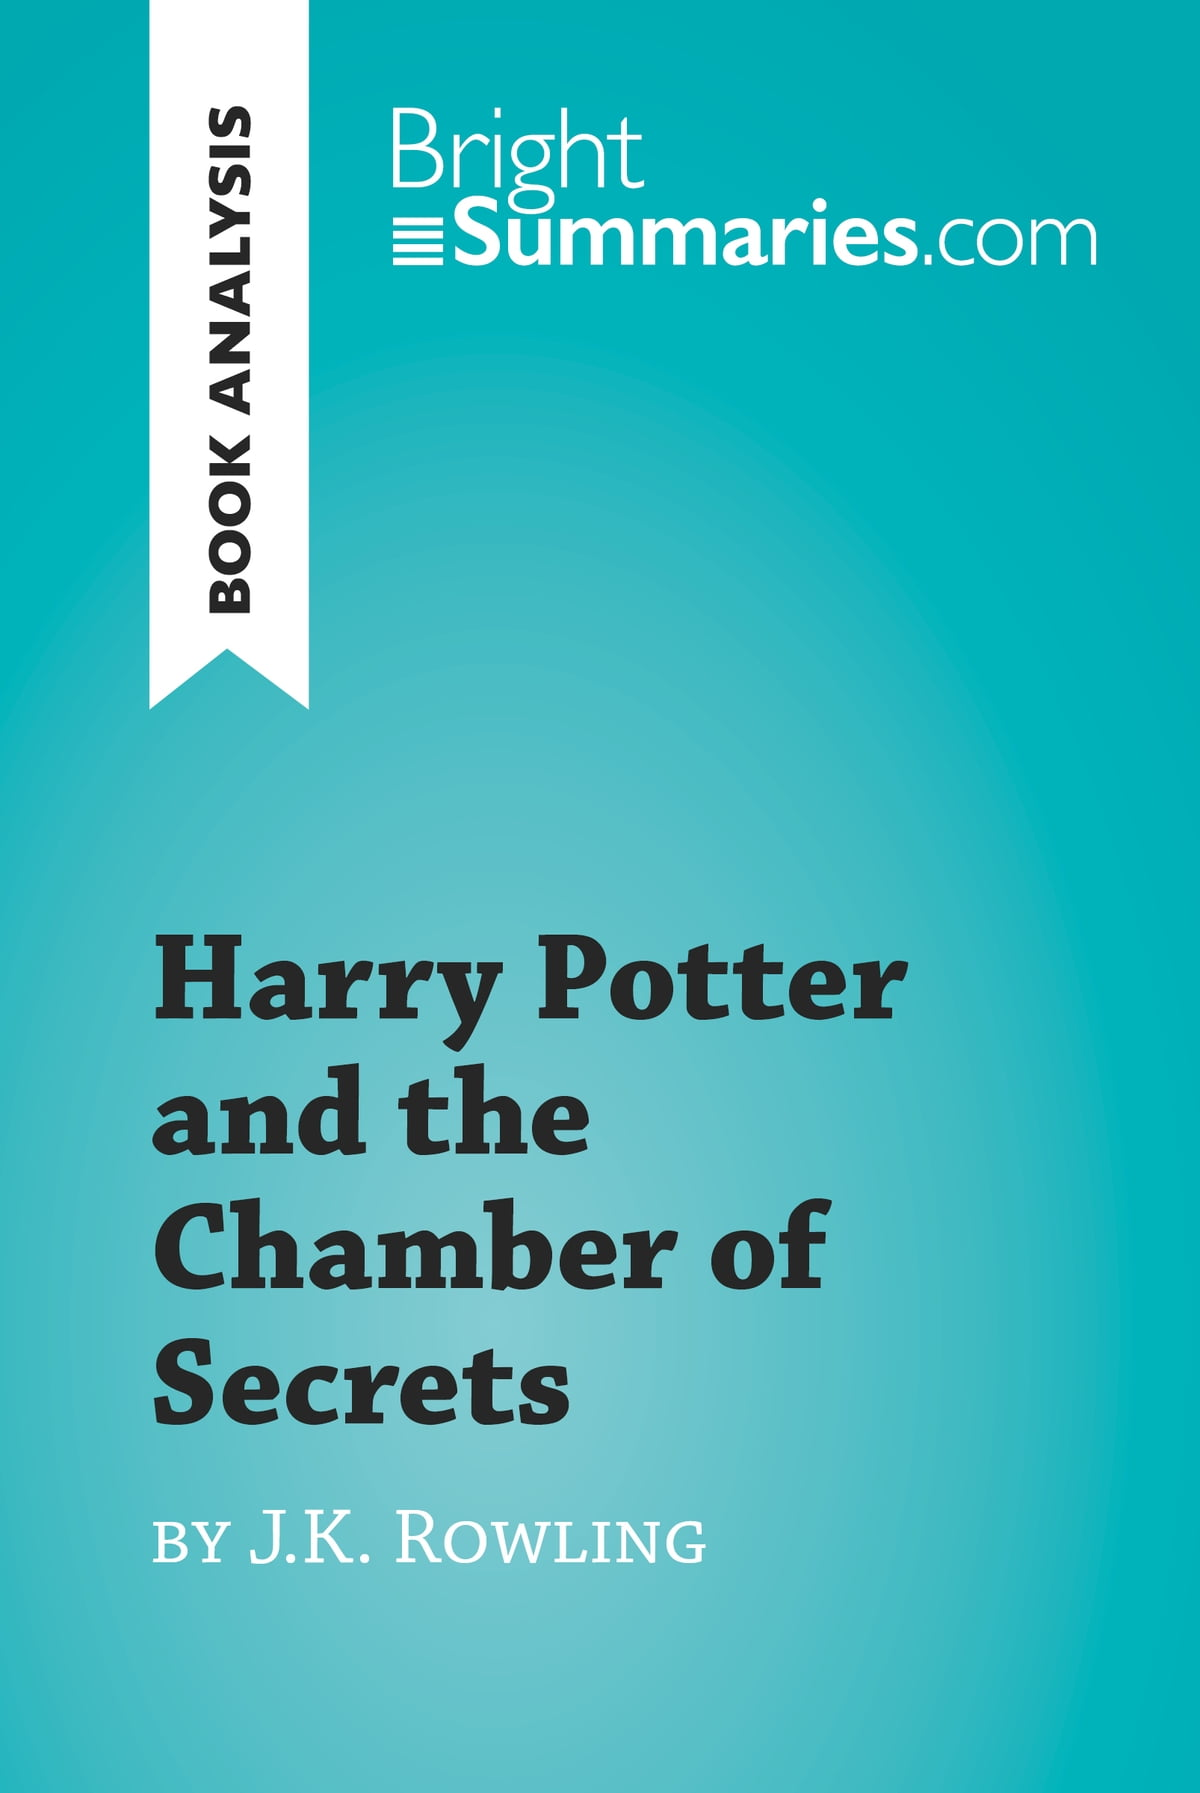 Harry Potter and the Chamber of Secrets by J.K. Rowling (Book Analysis)  eBook by Bright Summaries - 9782806295972 | Rakuten Kobo